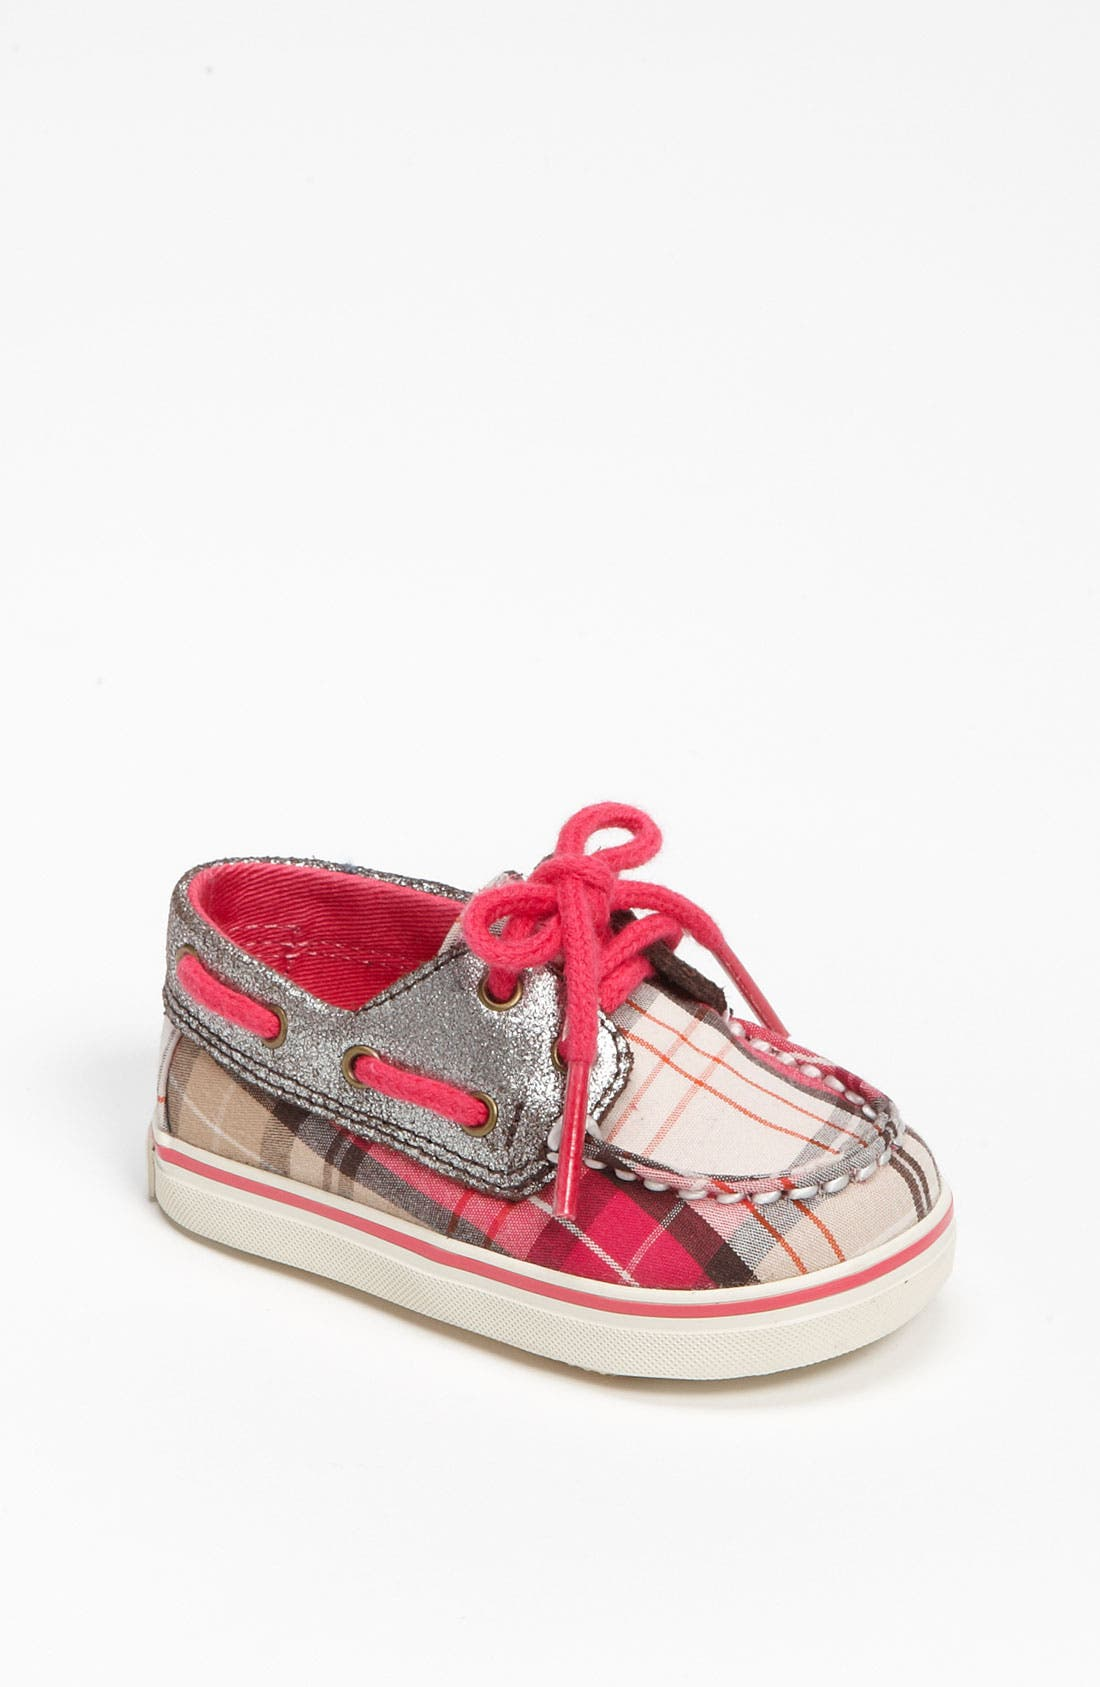 Alternate Image 1 Selected - Sperry Kids 'Bahama' Crib Shoe (Baby)